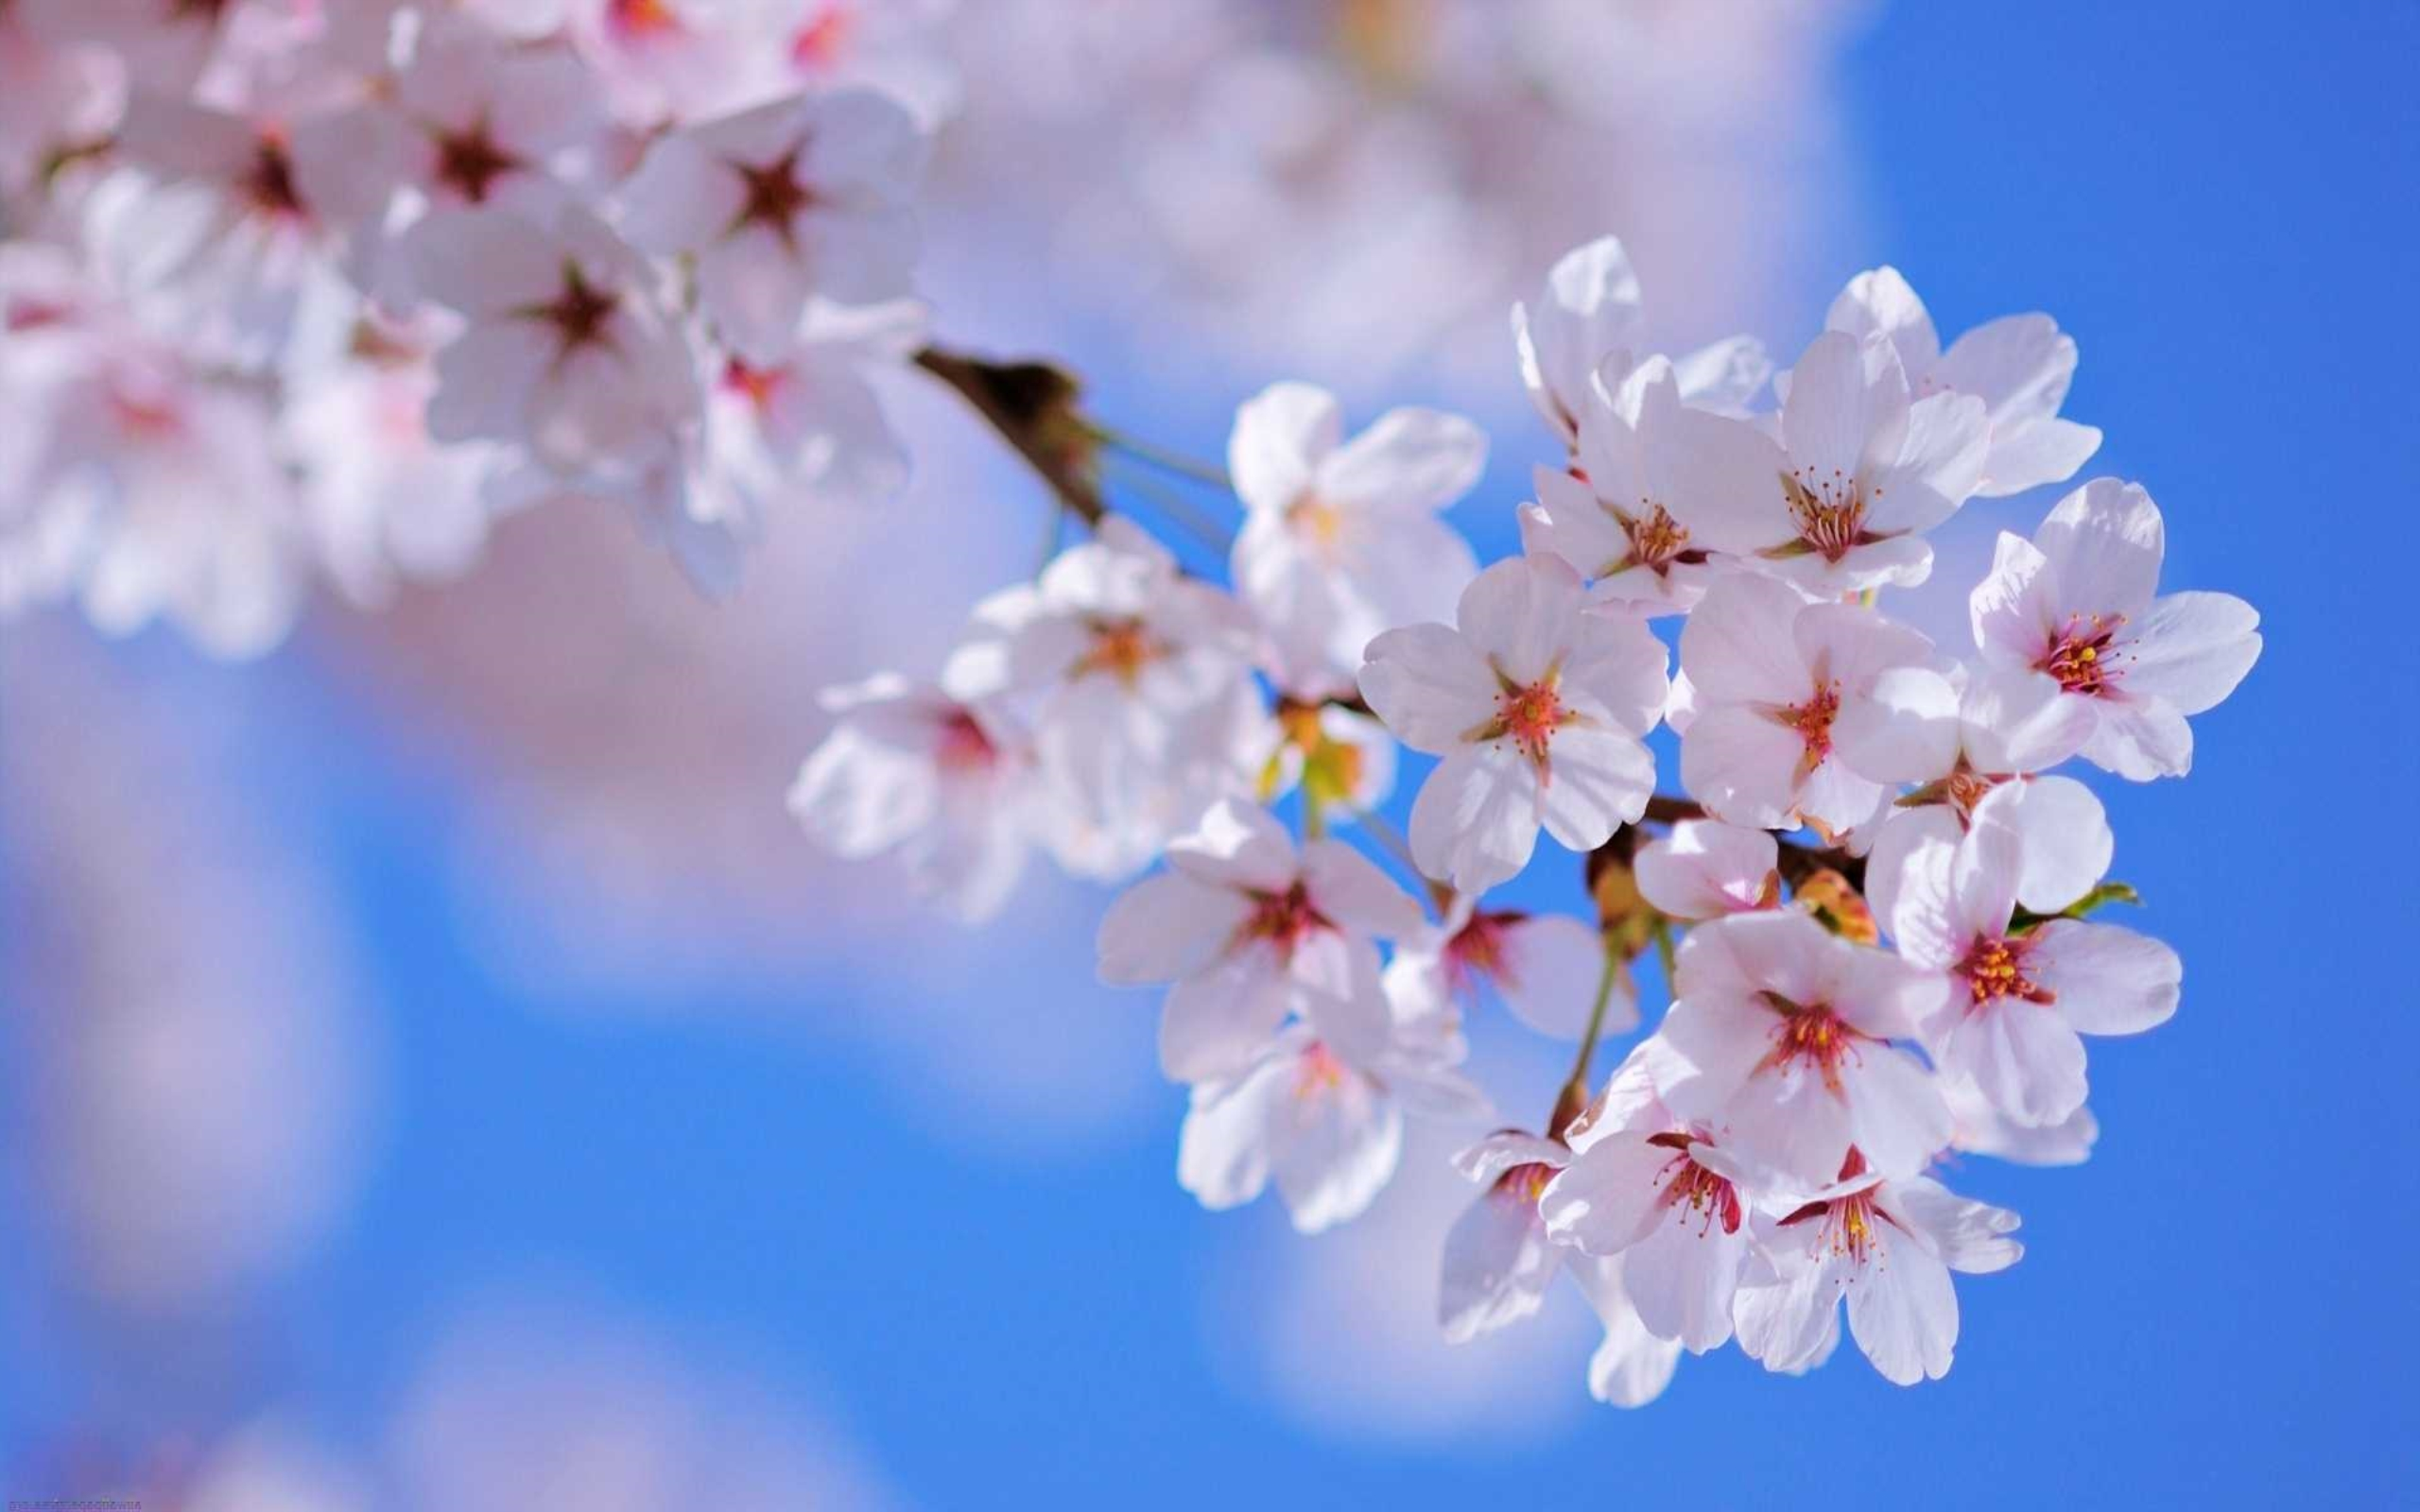 Spring Flowers Wallpaper 38 Spring Flowers HD Wallpapers 2560x1600